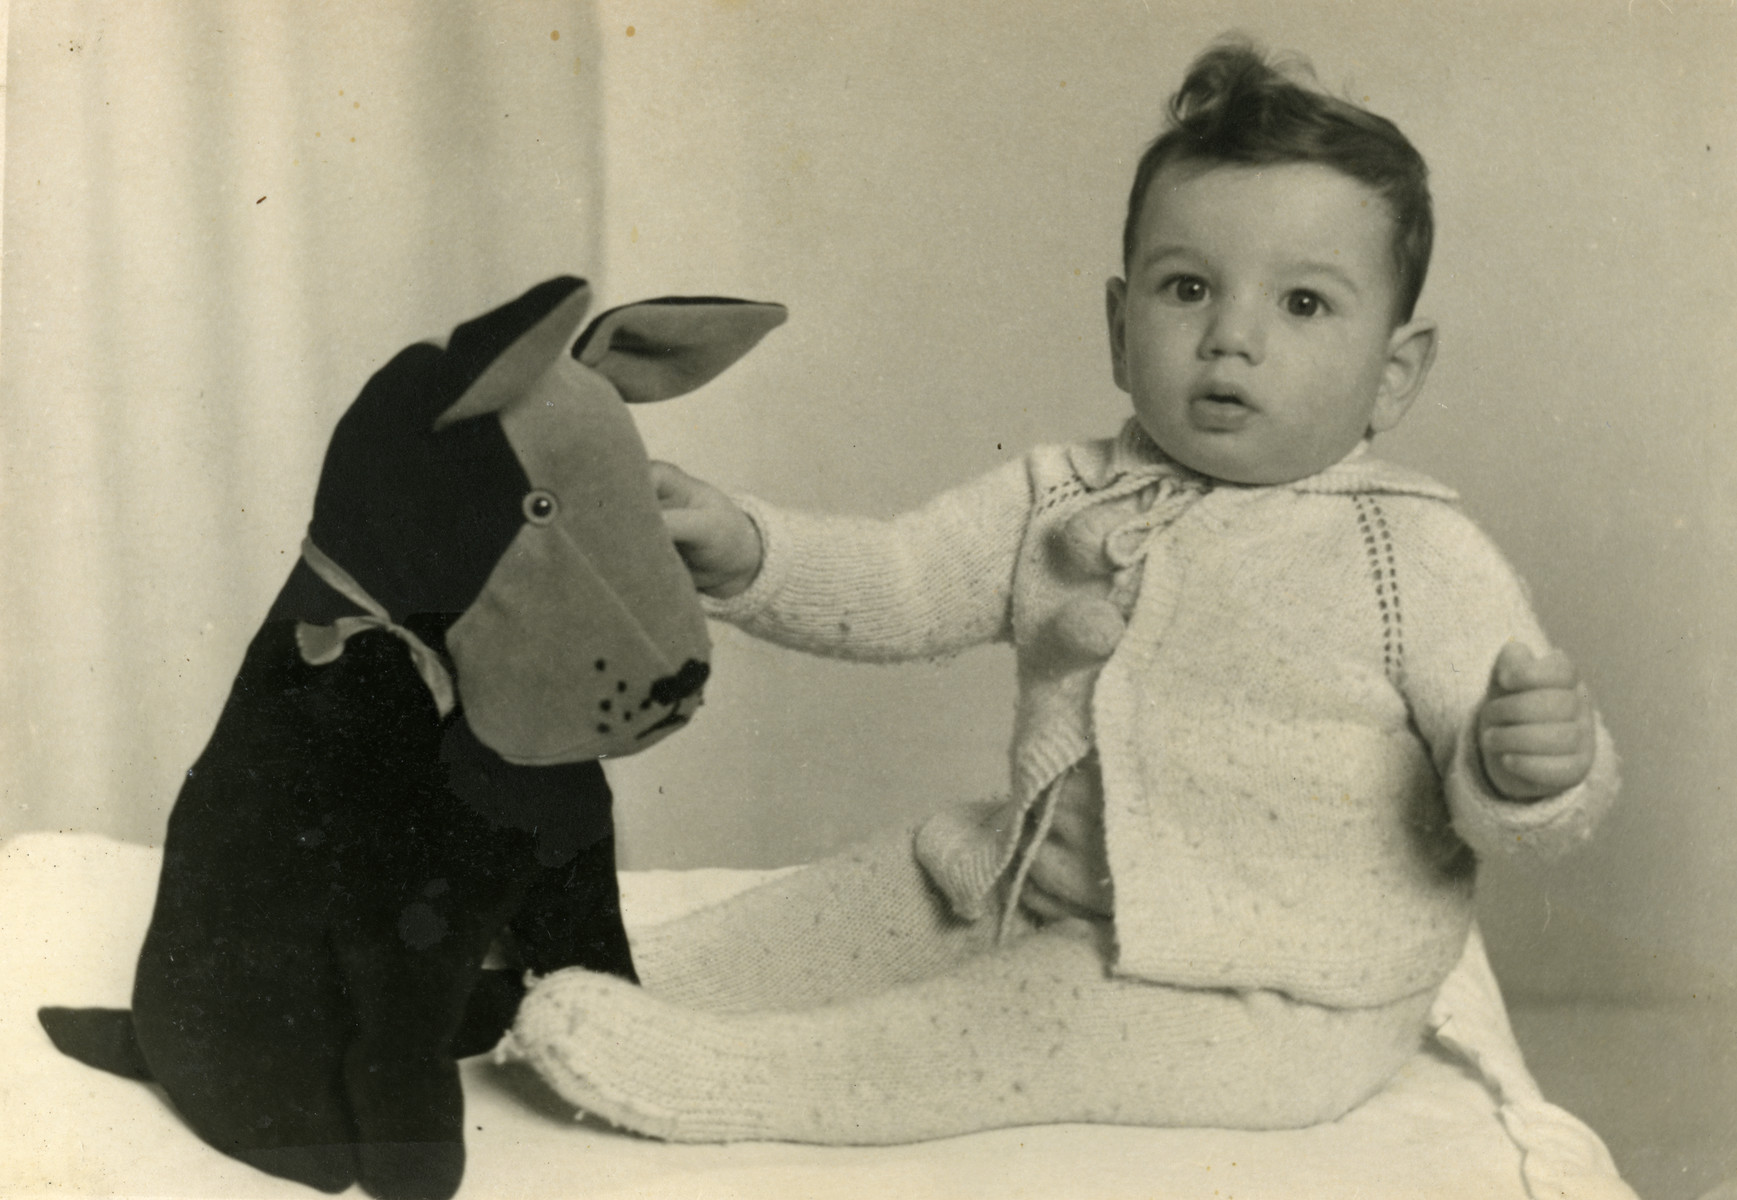 Portrait of Simon Herman van den Bergh, the cousin of the donor, with a large stuffed dog.  Simon van den Bergh was born in Amsterdam on December 14, 1941 to Jacques and Sara van den Bergh-Kater.  He was killed in Sobibor at the age of one and a half on July 2, 1943.